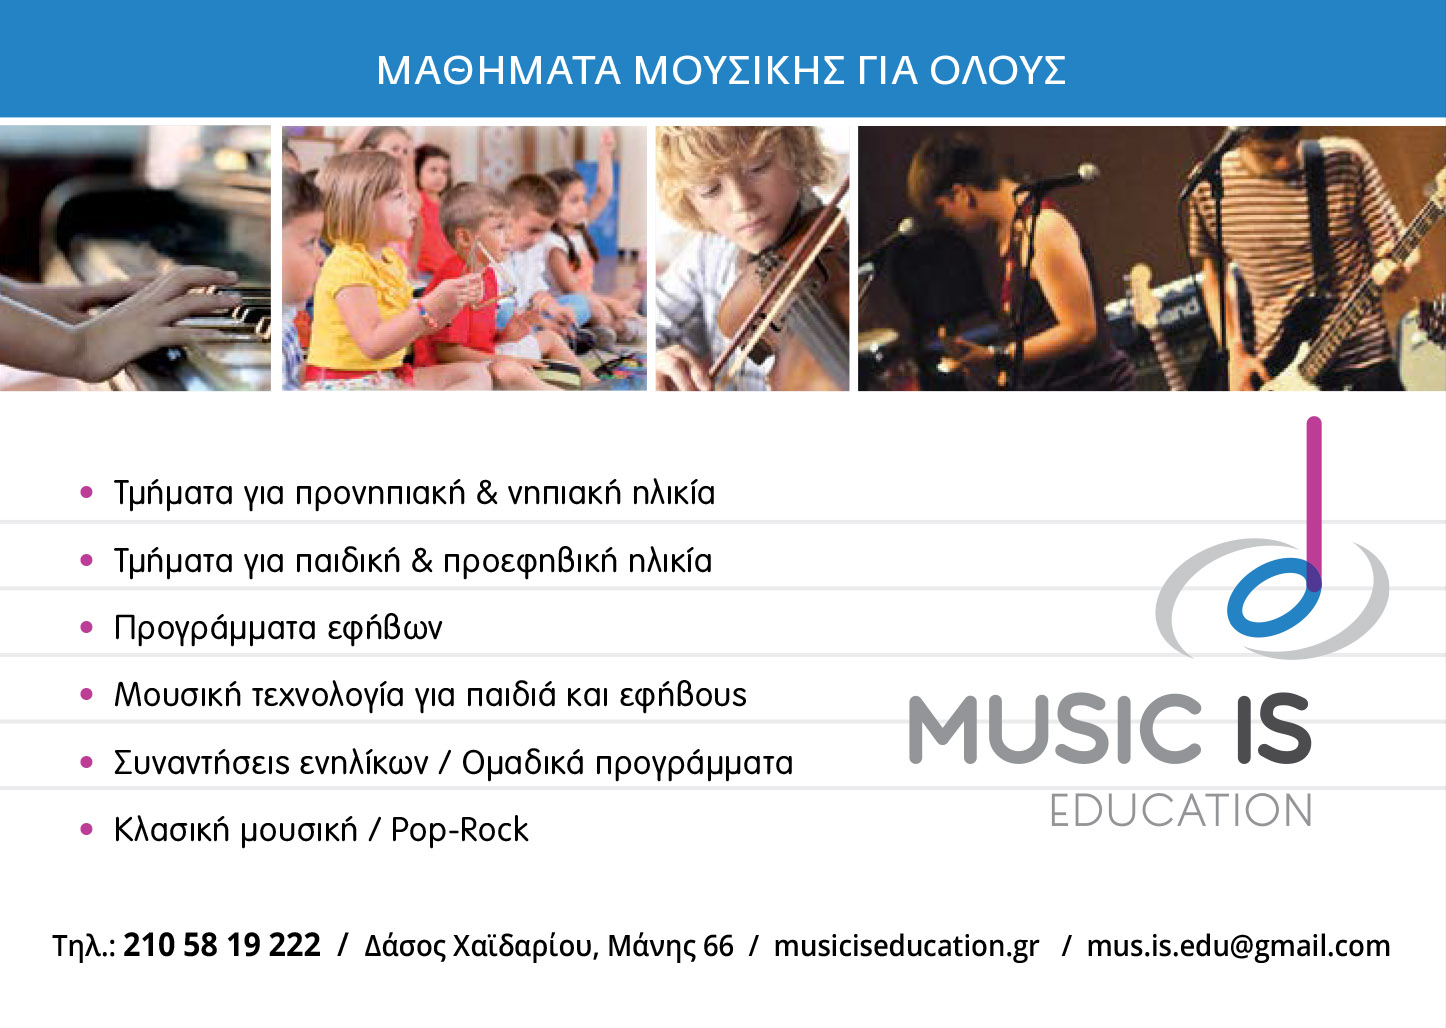 MUSIC IS EDUCATION